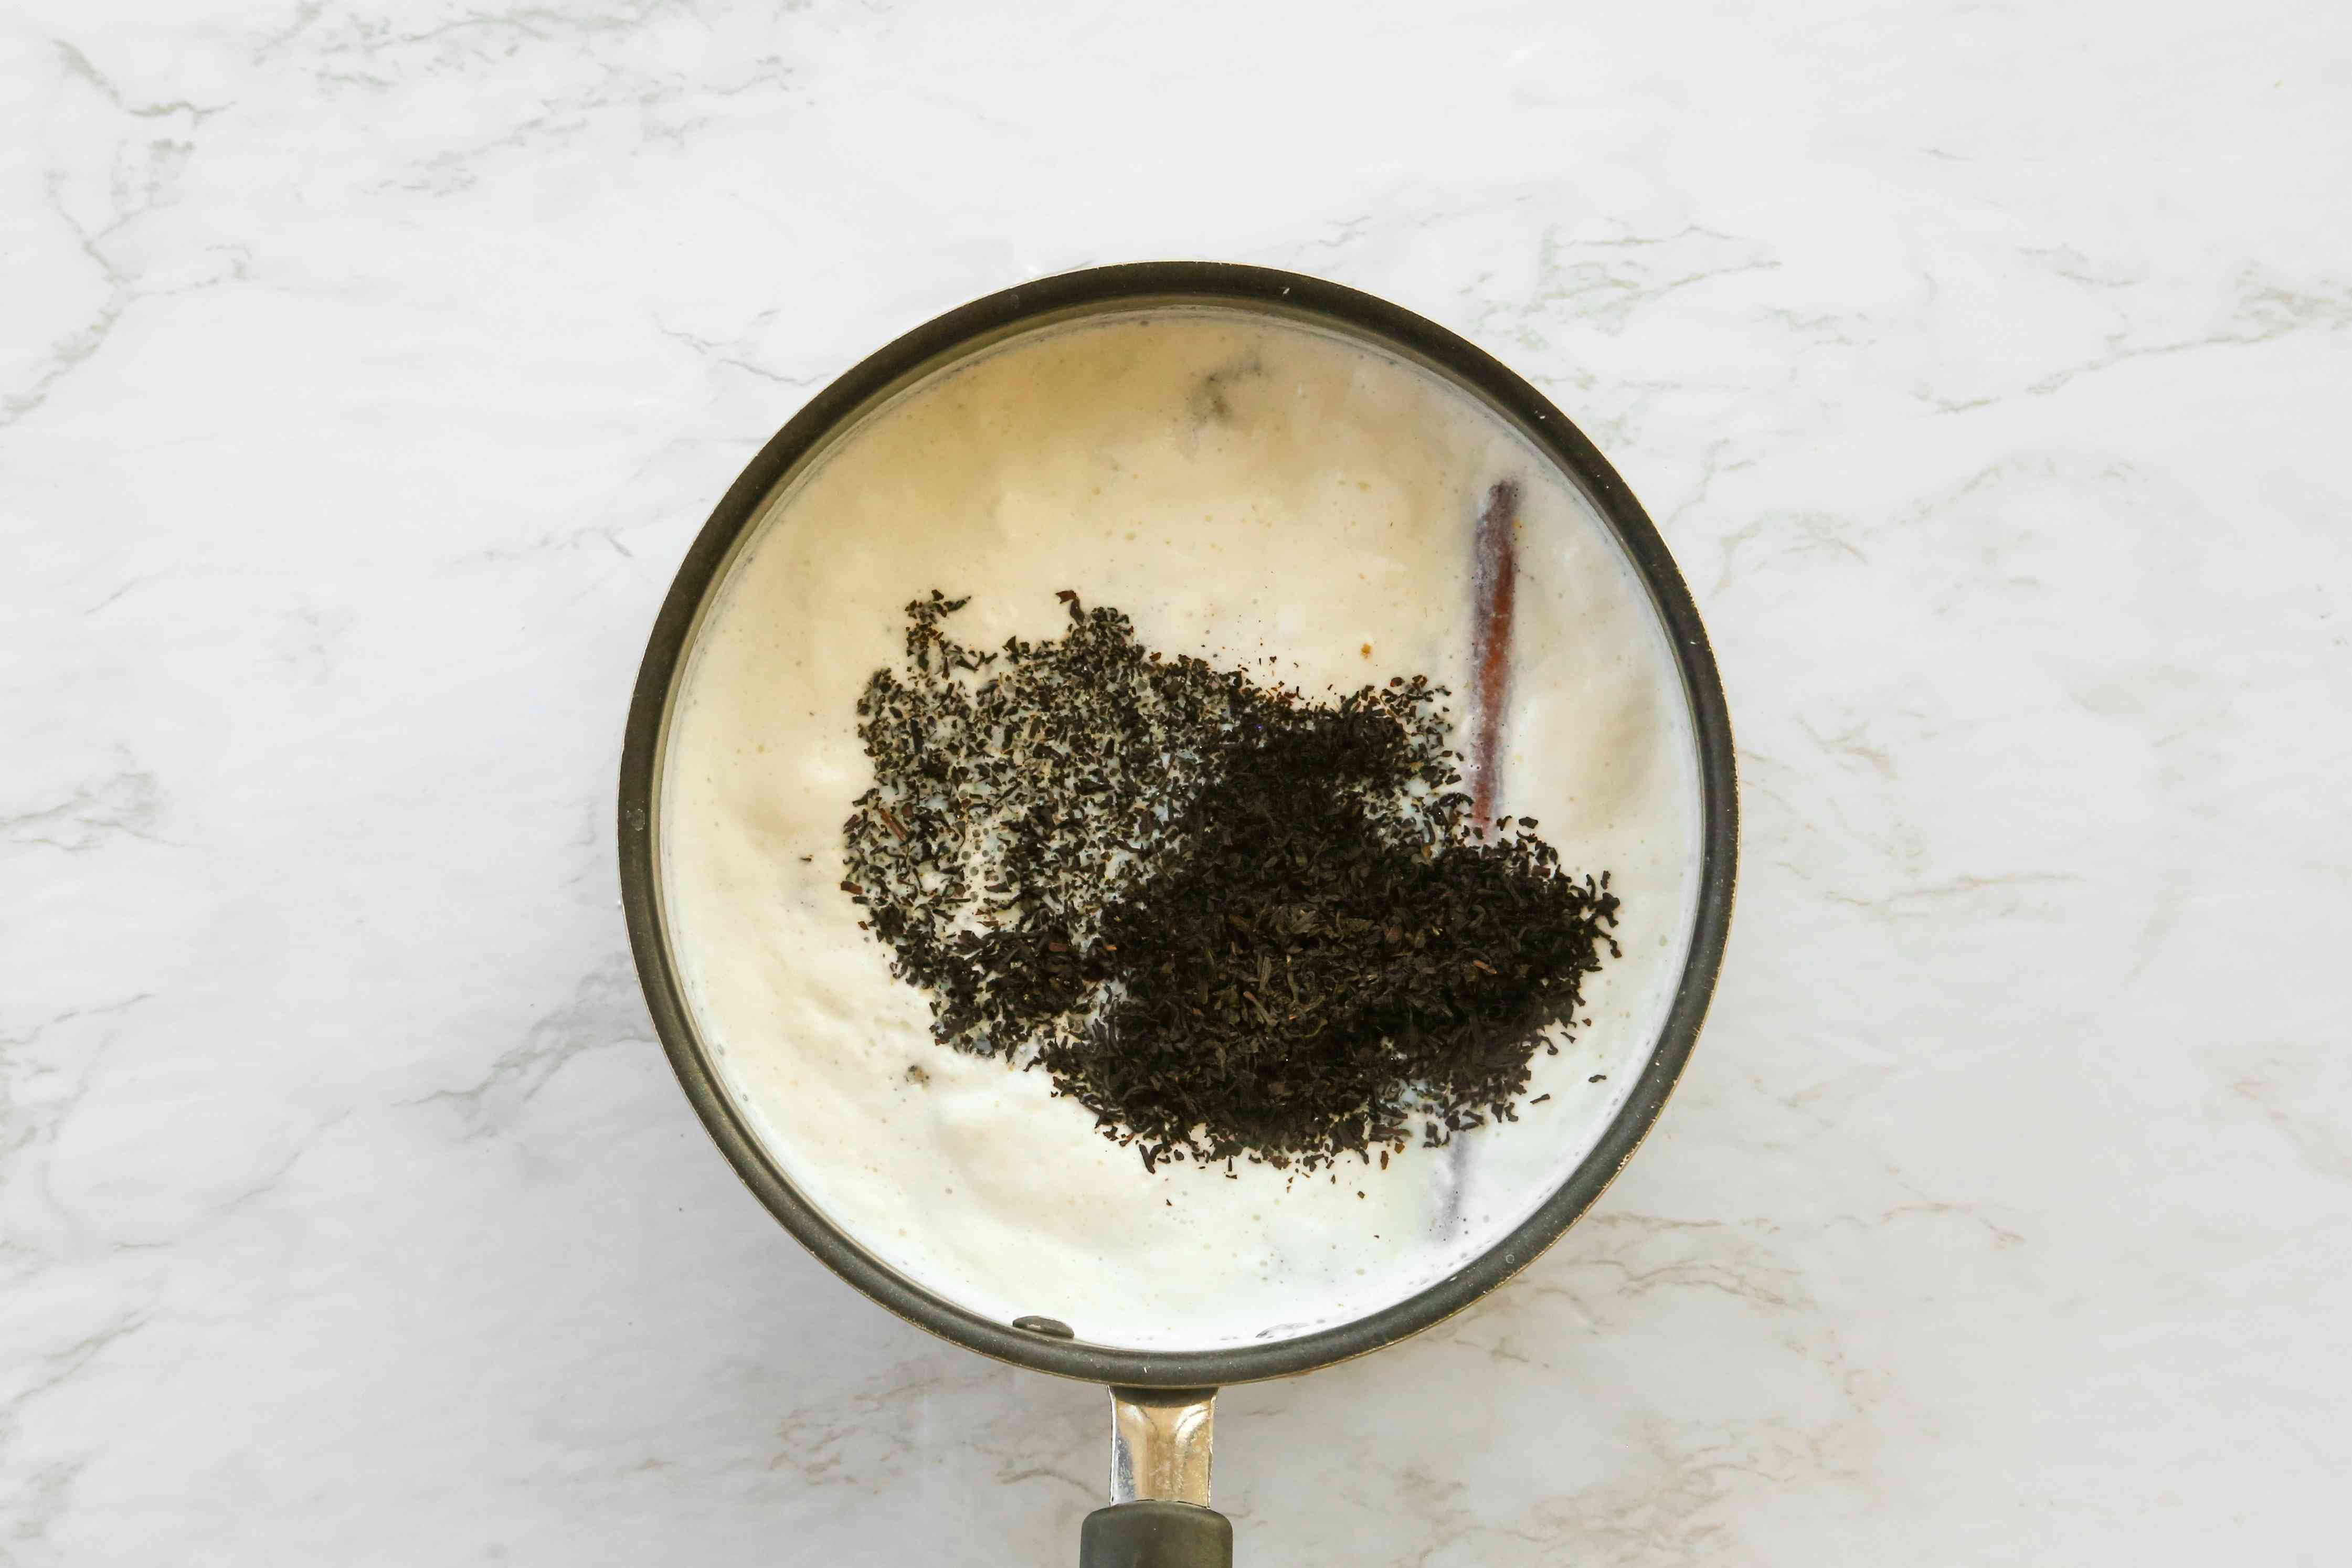 Add the sugar and tea leaves to the mixture in the saucepan